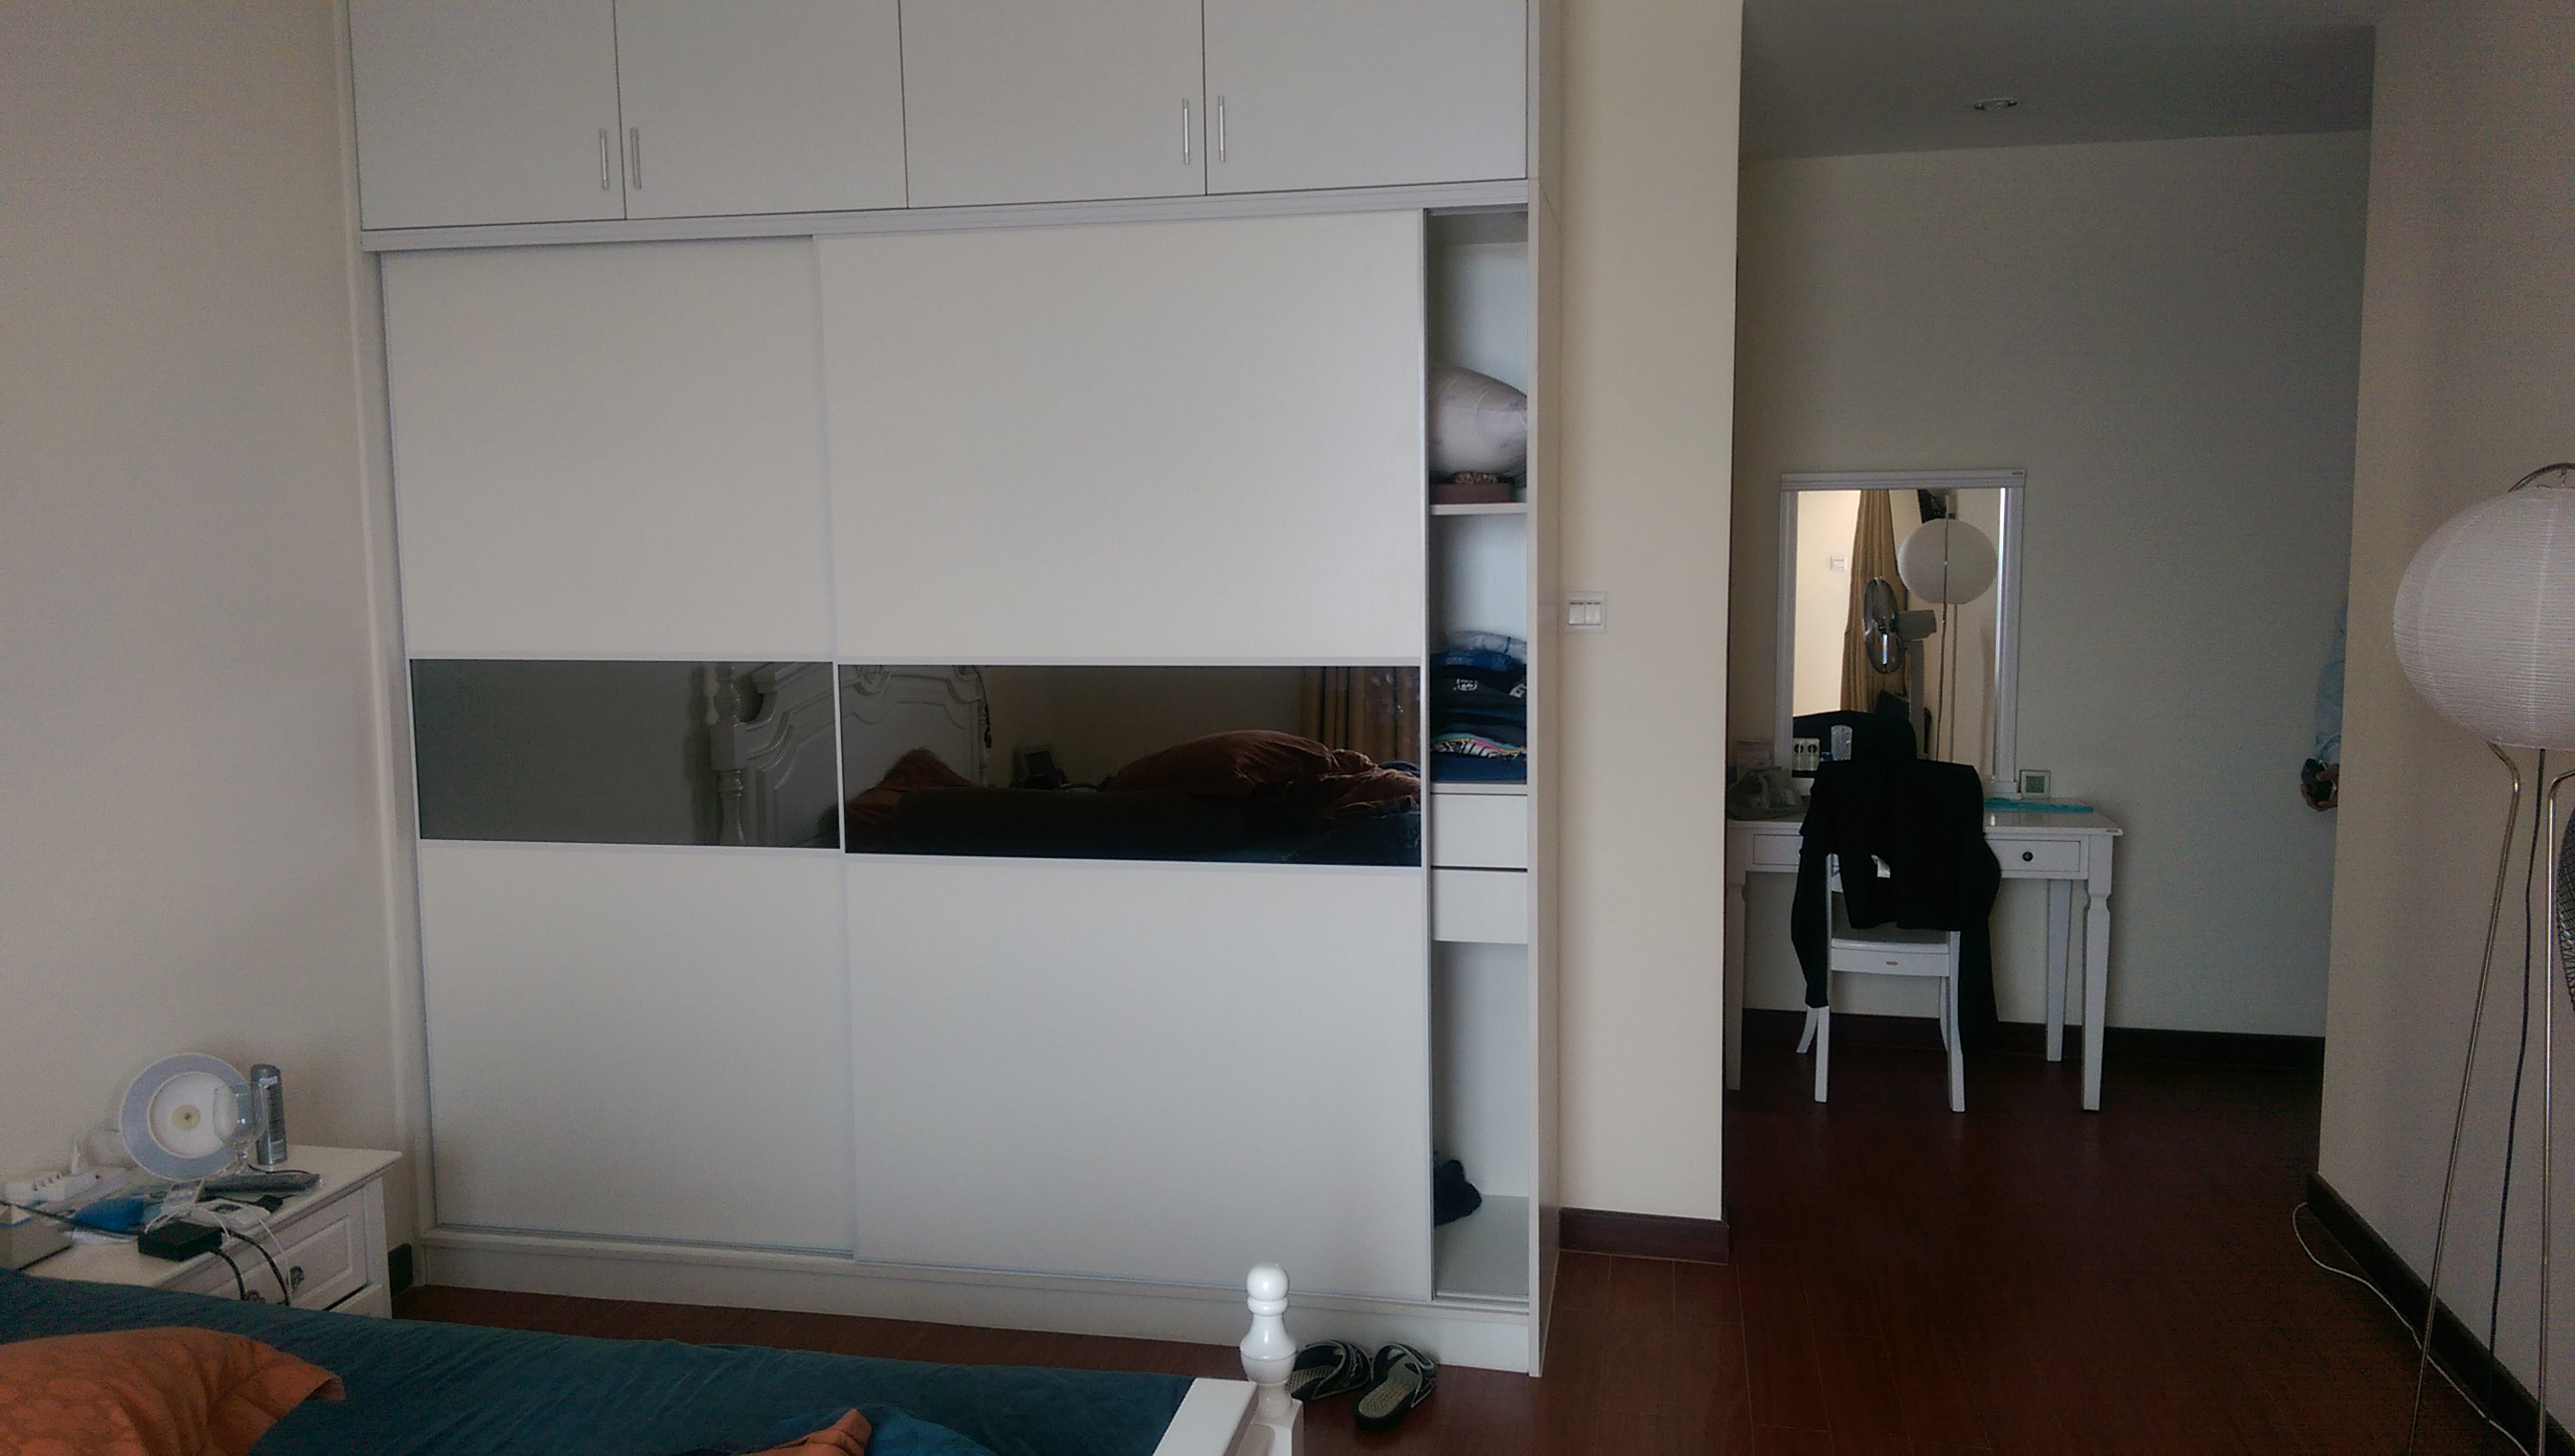 3 bedrooms apartment for rent sale riverside lgm021 welcome to le grand mekong property for 3 bedroom apartments in riverside ca